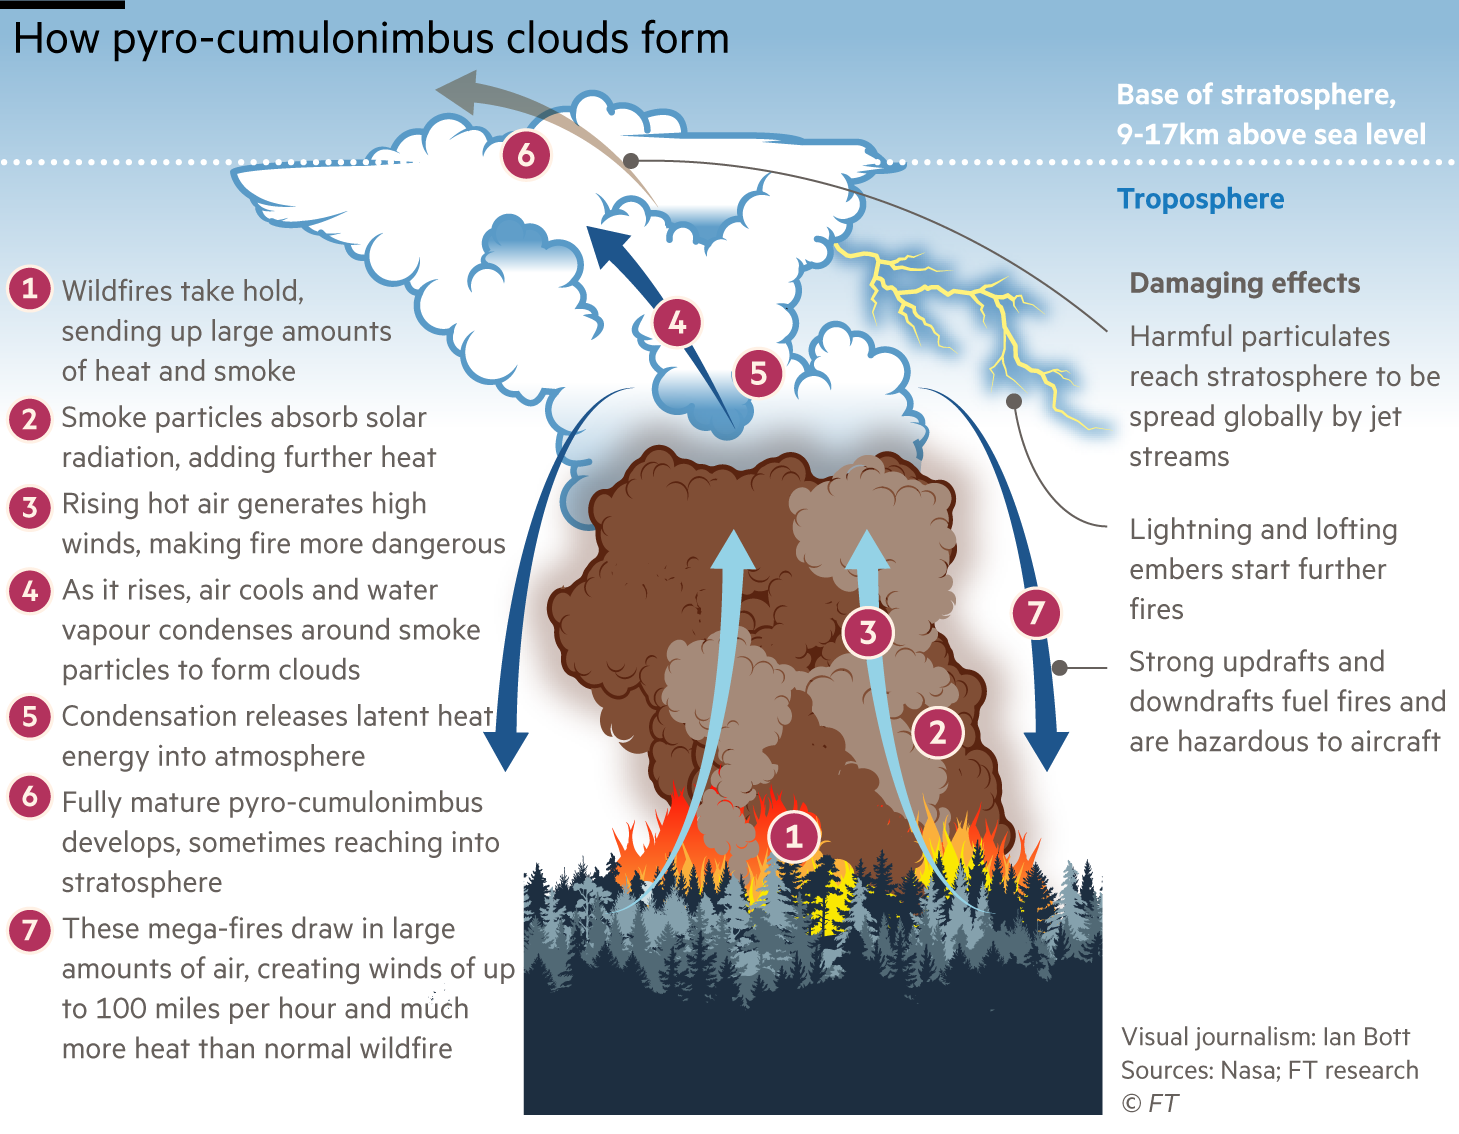 Information graphic looking at the dangers of Pyrocumulonimbus clouds and explaining how they form